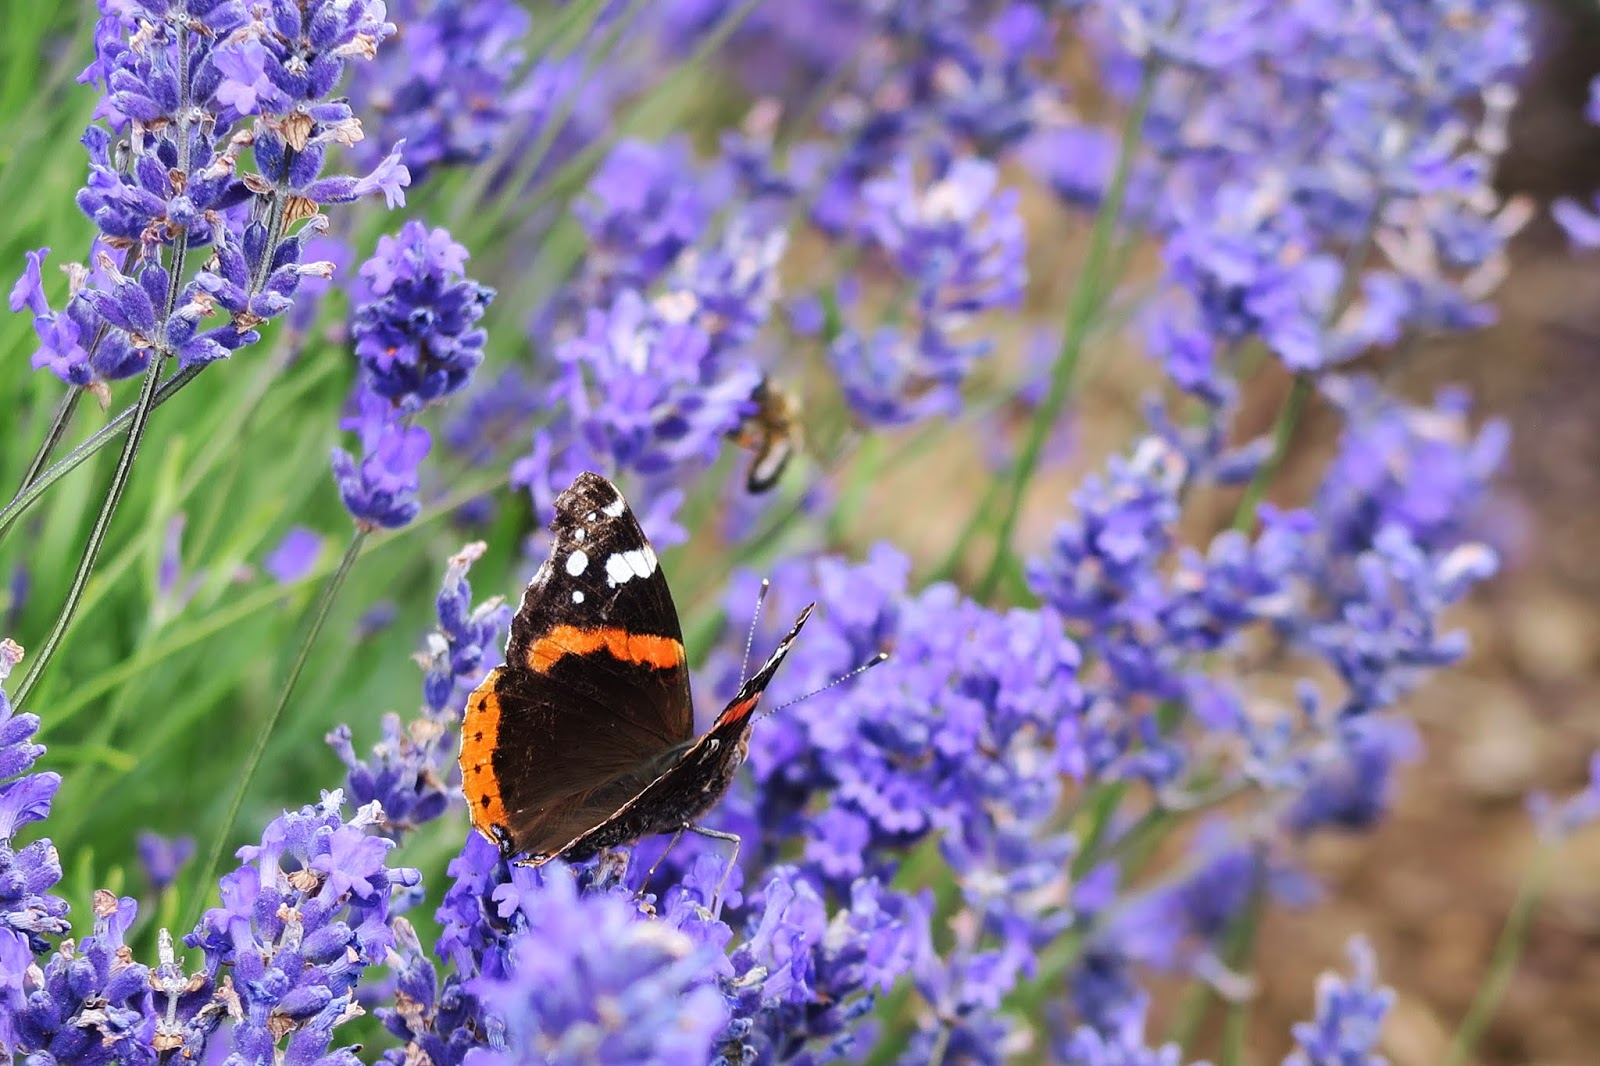 a black and orange butterfly can be seen resting on a strand of lavender